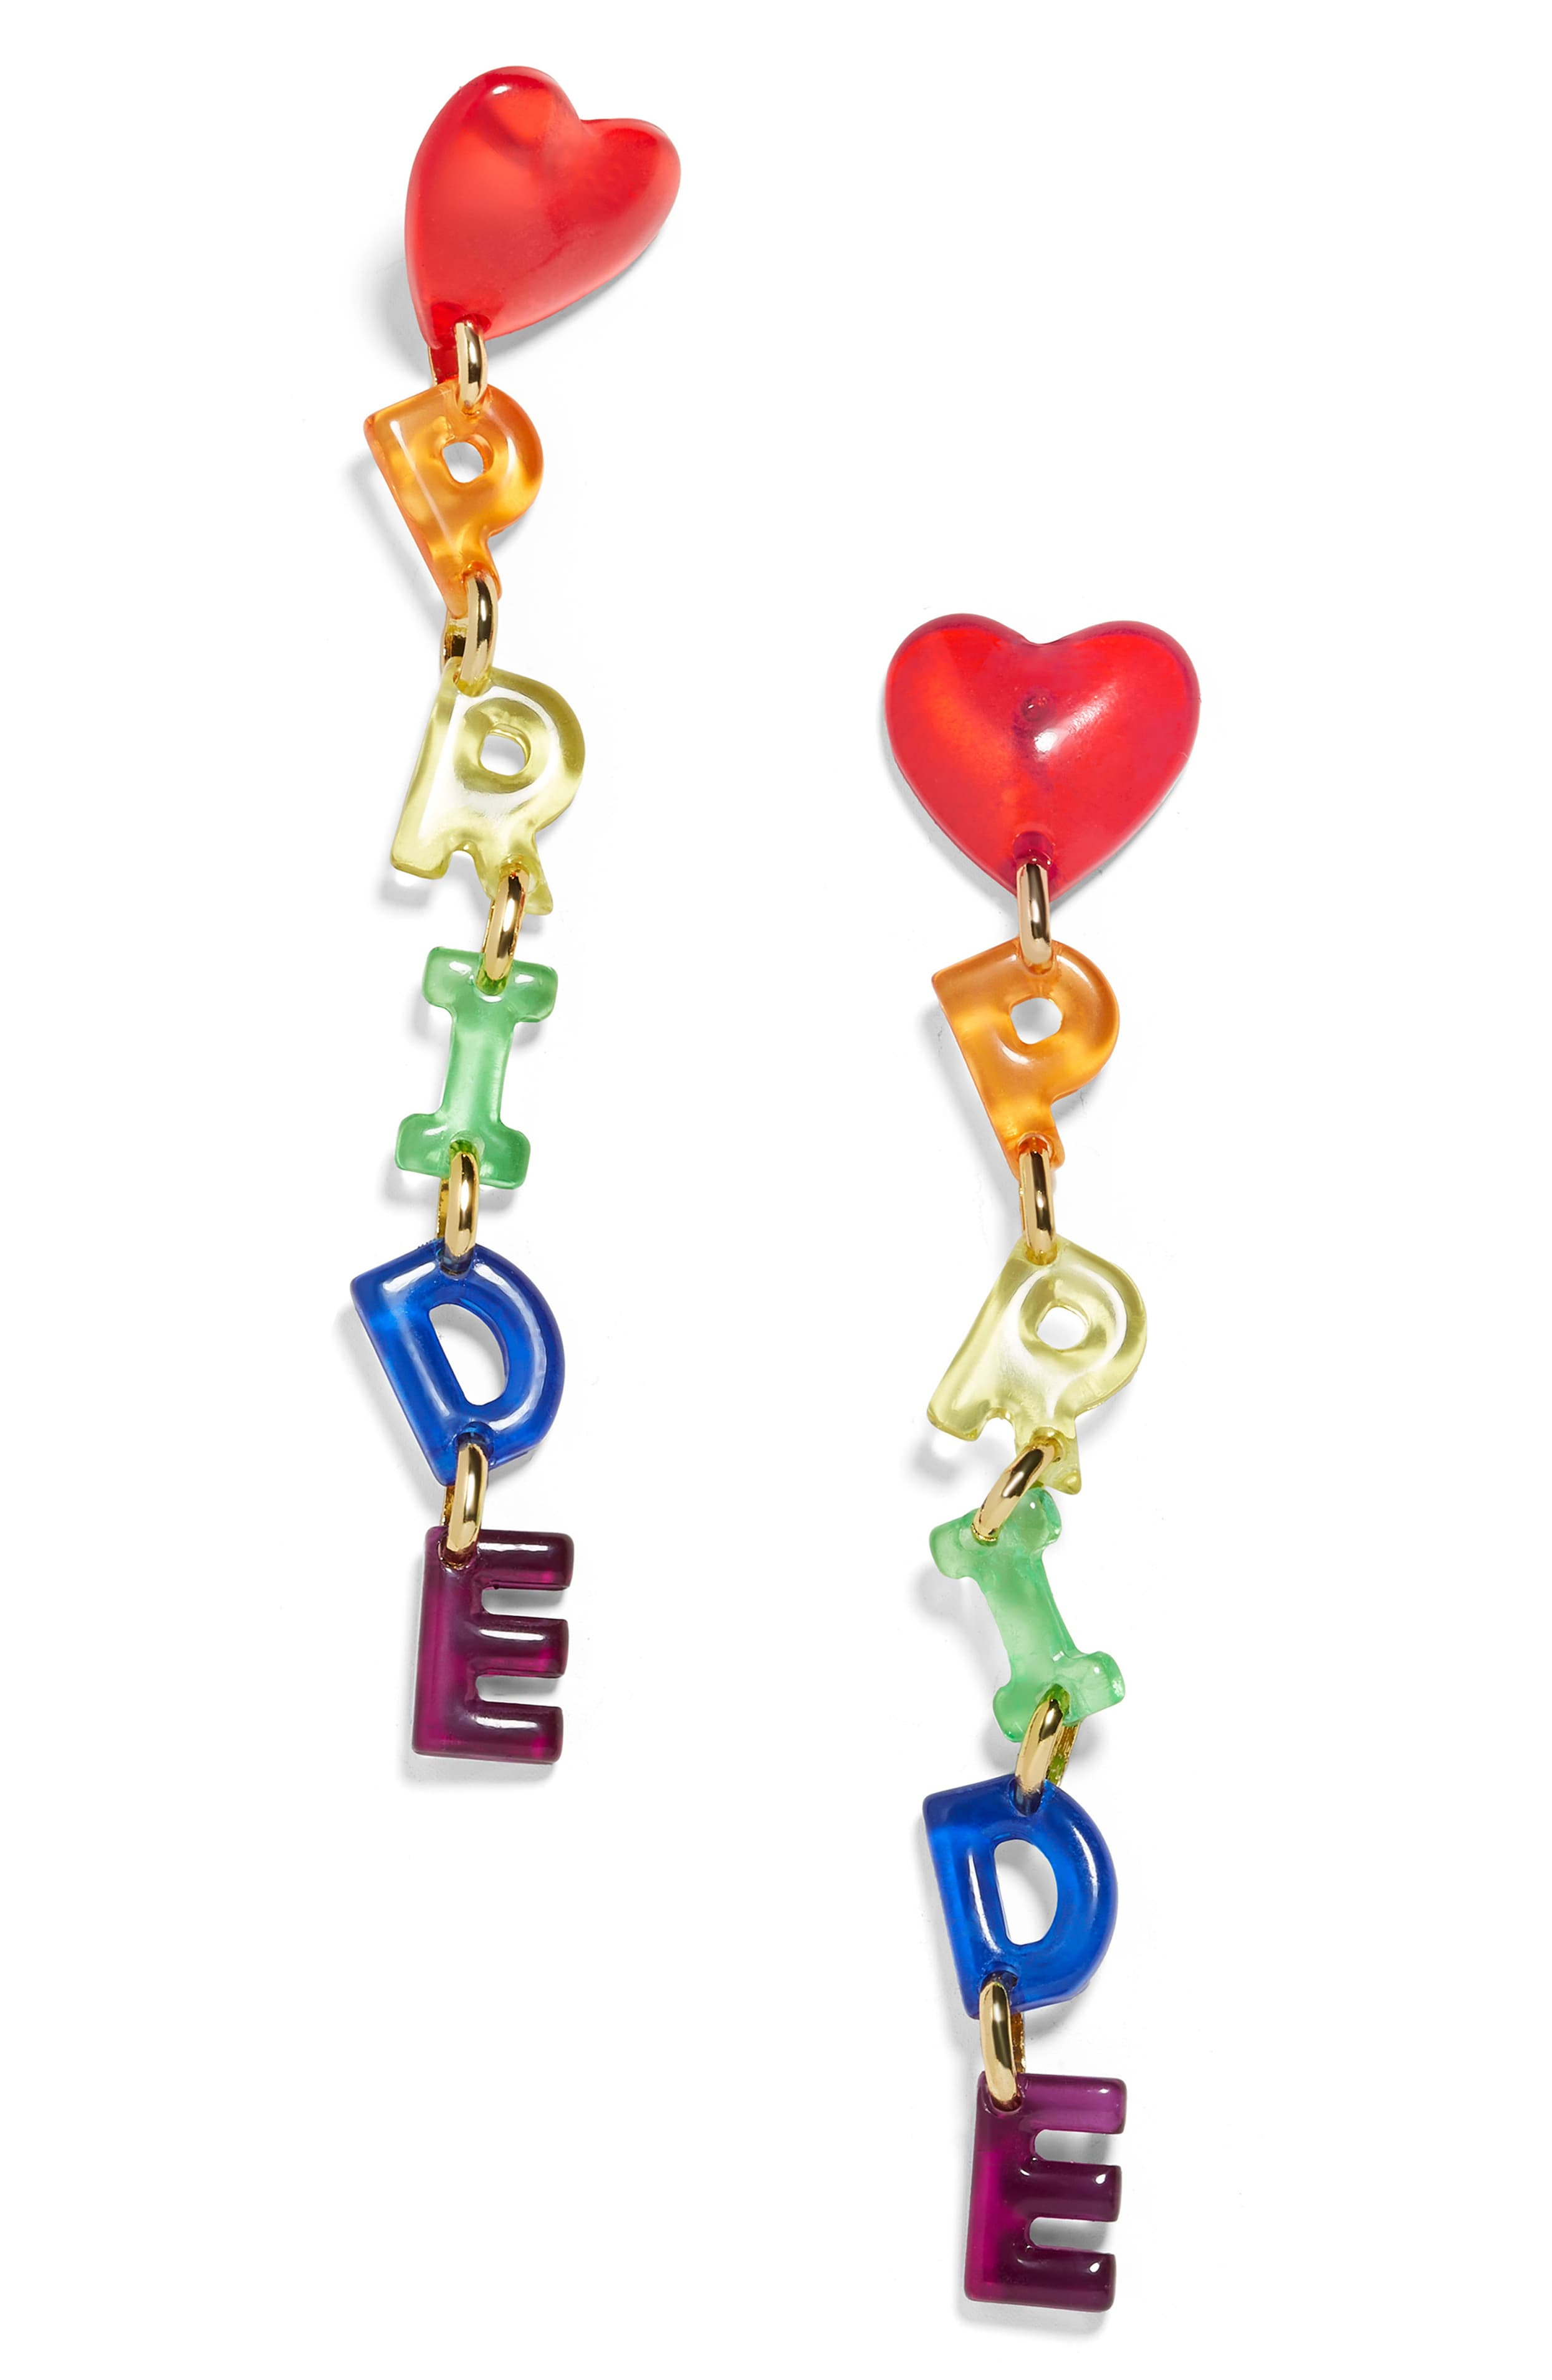 Celebrate Pride all month long (and beyond) with these darling drop earrings - it's the perfect way to express yourself.{ }Price $38 (Image: Nordstrom){ }